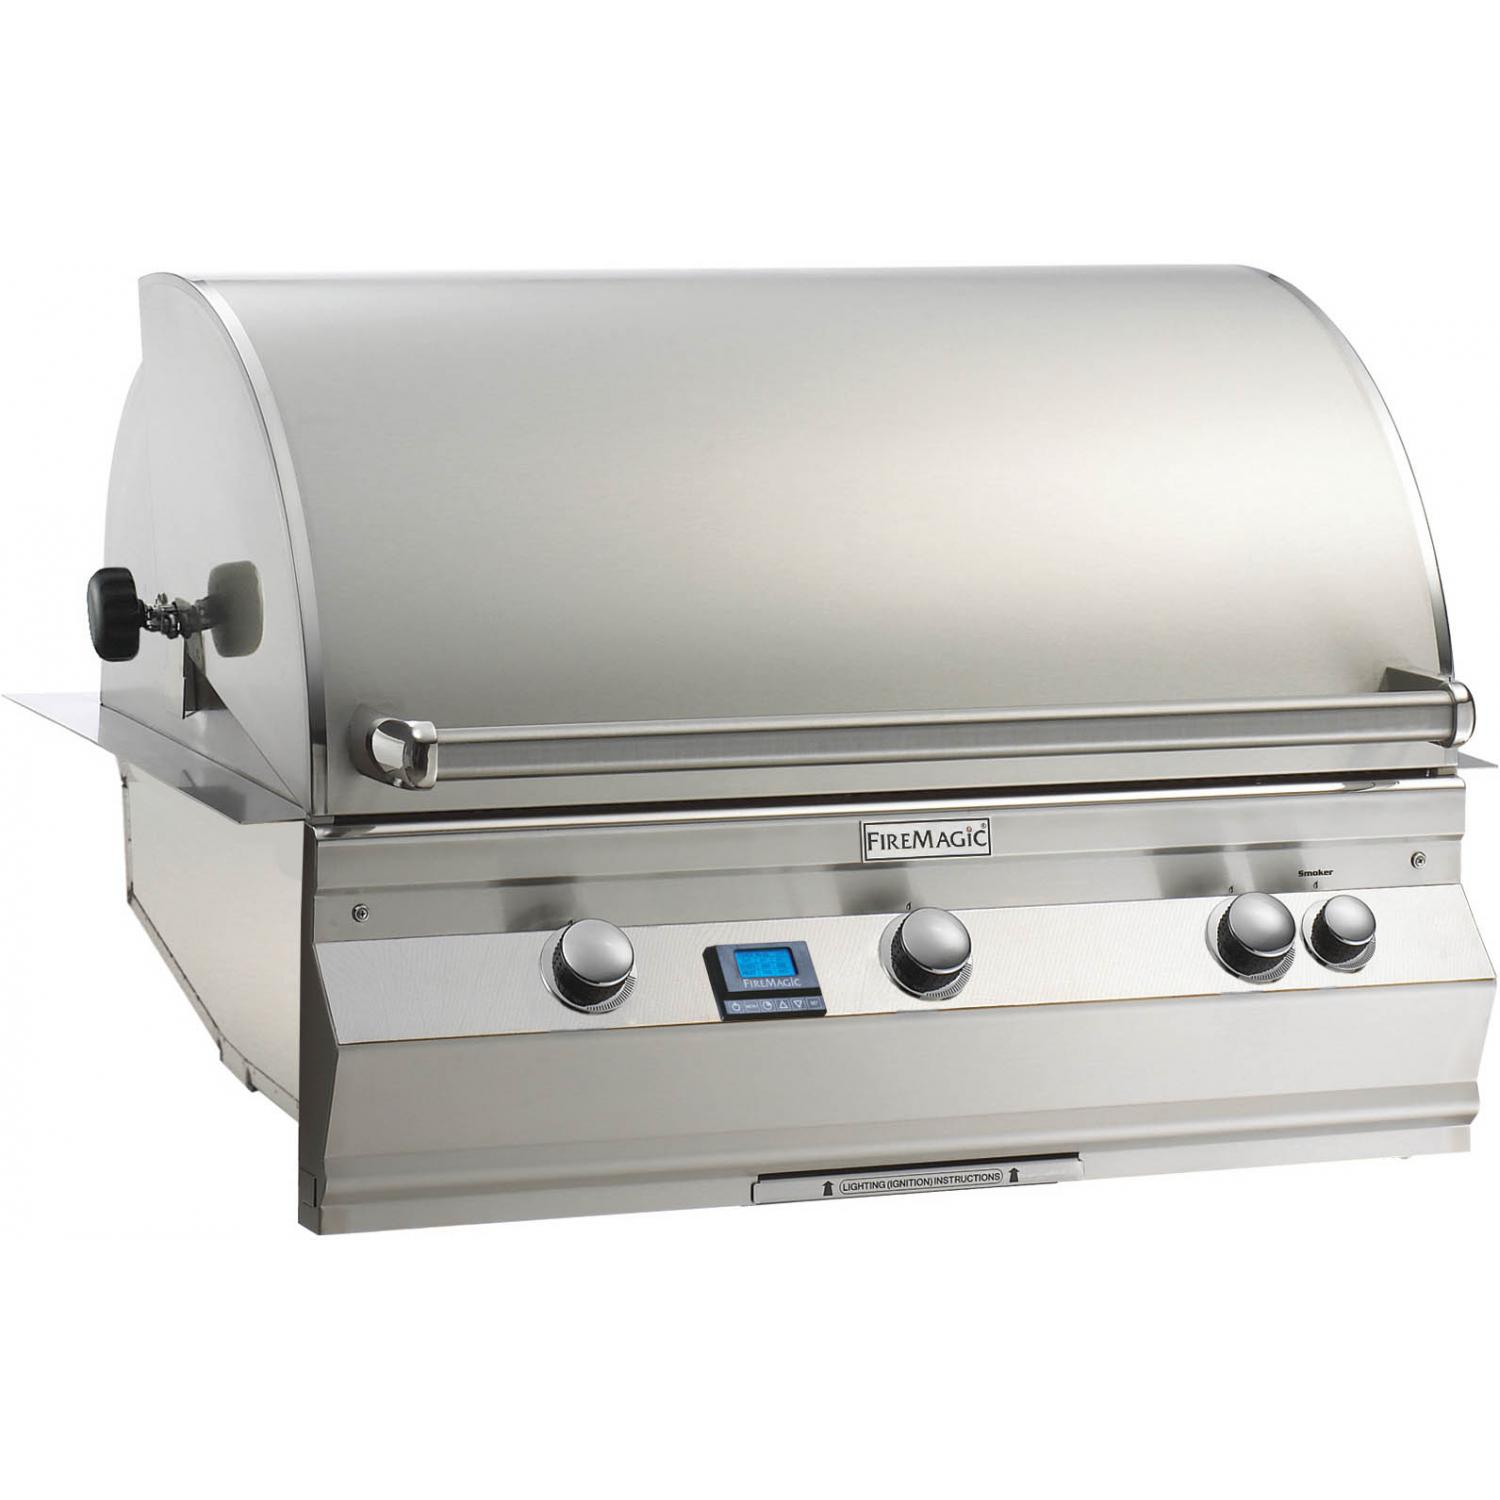 Fire Magic Aurora A790i All Infrared Built-In Natural Gas Grill With Rotisserie - A790i-6A1N 2894096